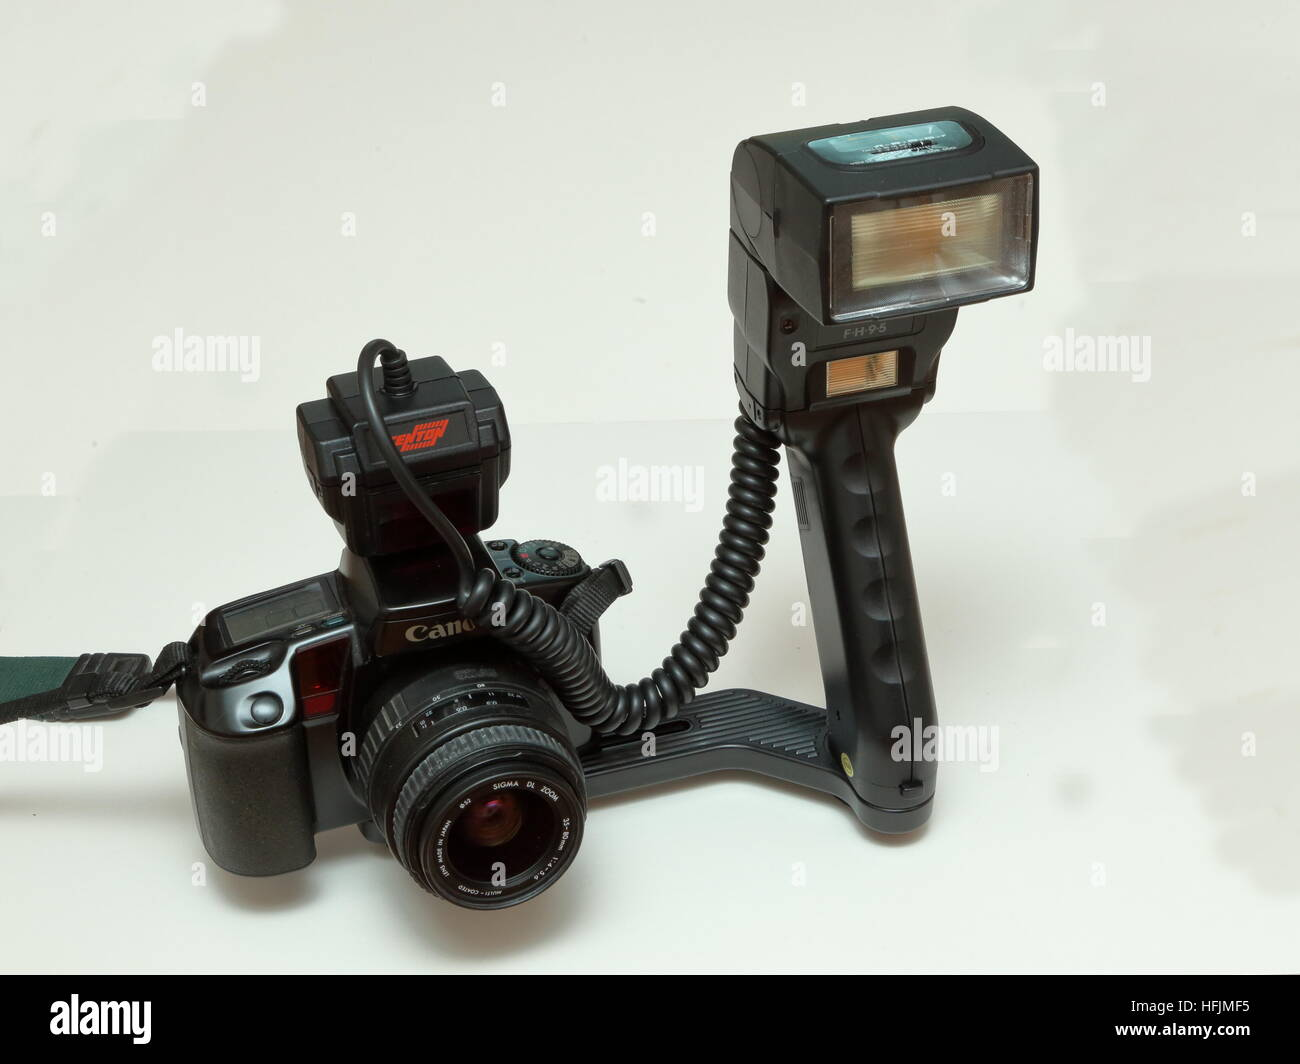 Canon EOS 100 35mm SLR film camera with Sigma 35-80mm lens and Centon FH95 flashgun on hand grip from 1990s - Stock Image